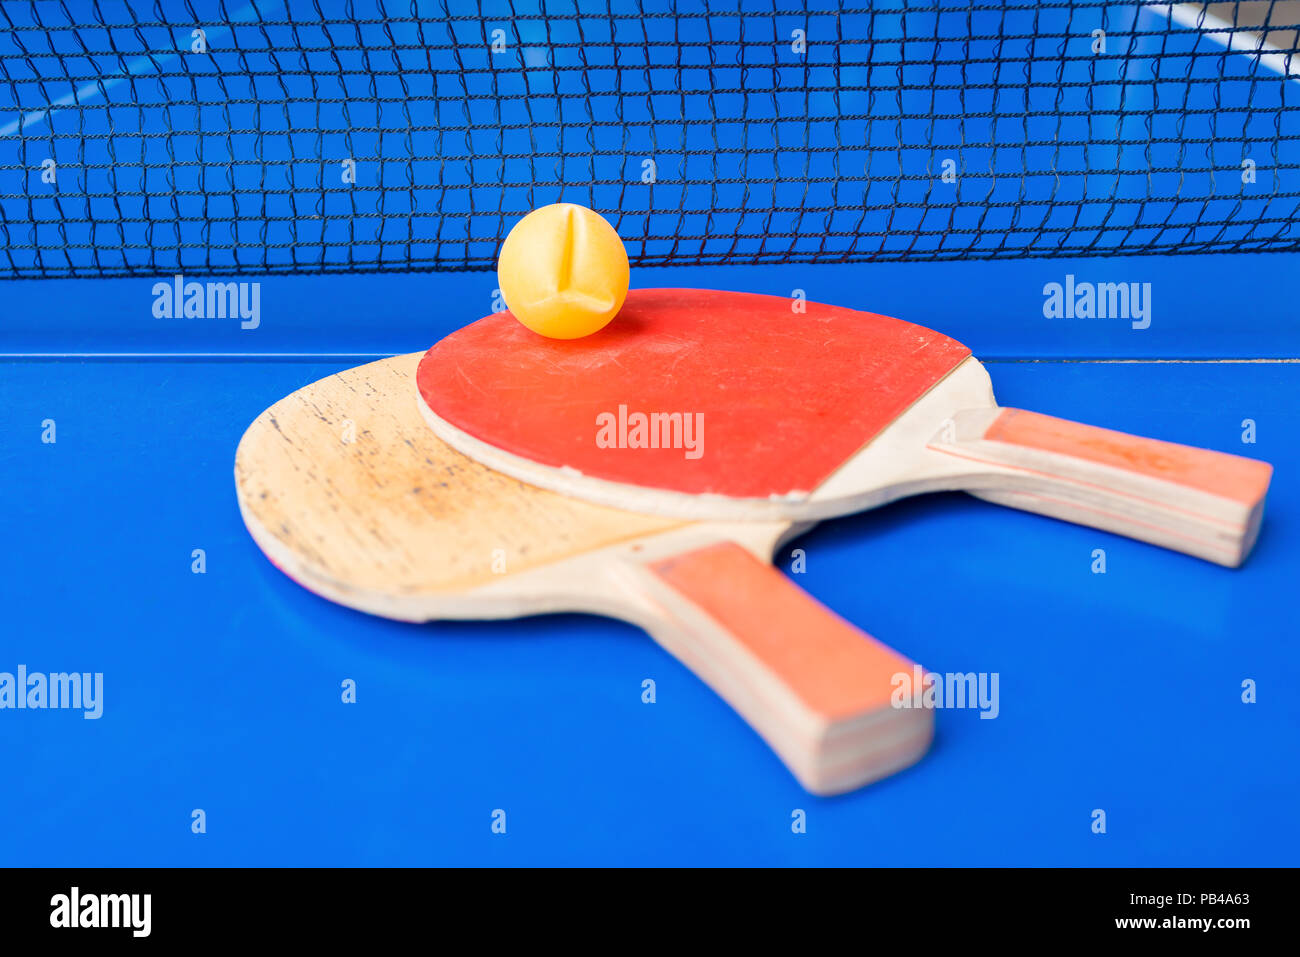 table tennis tournament ping pong background.html